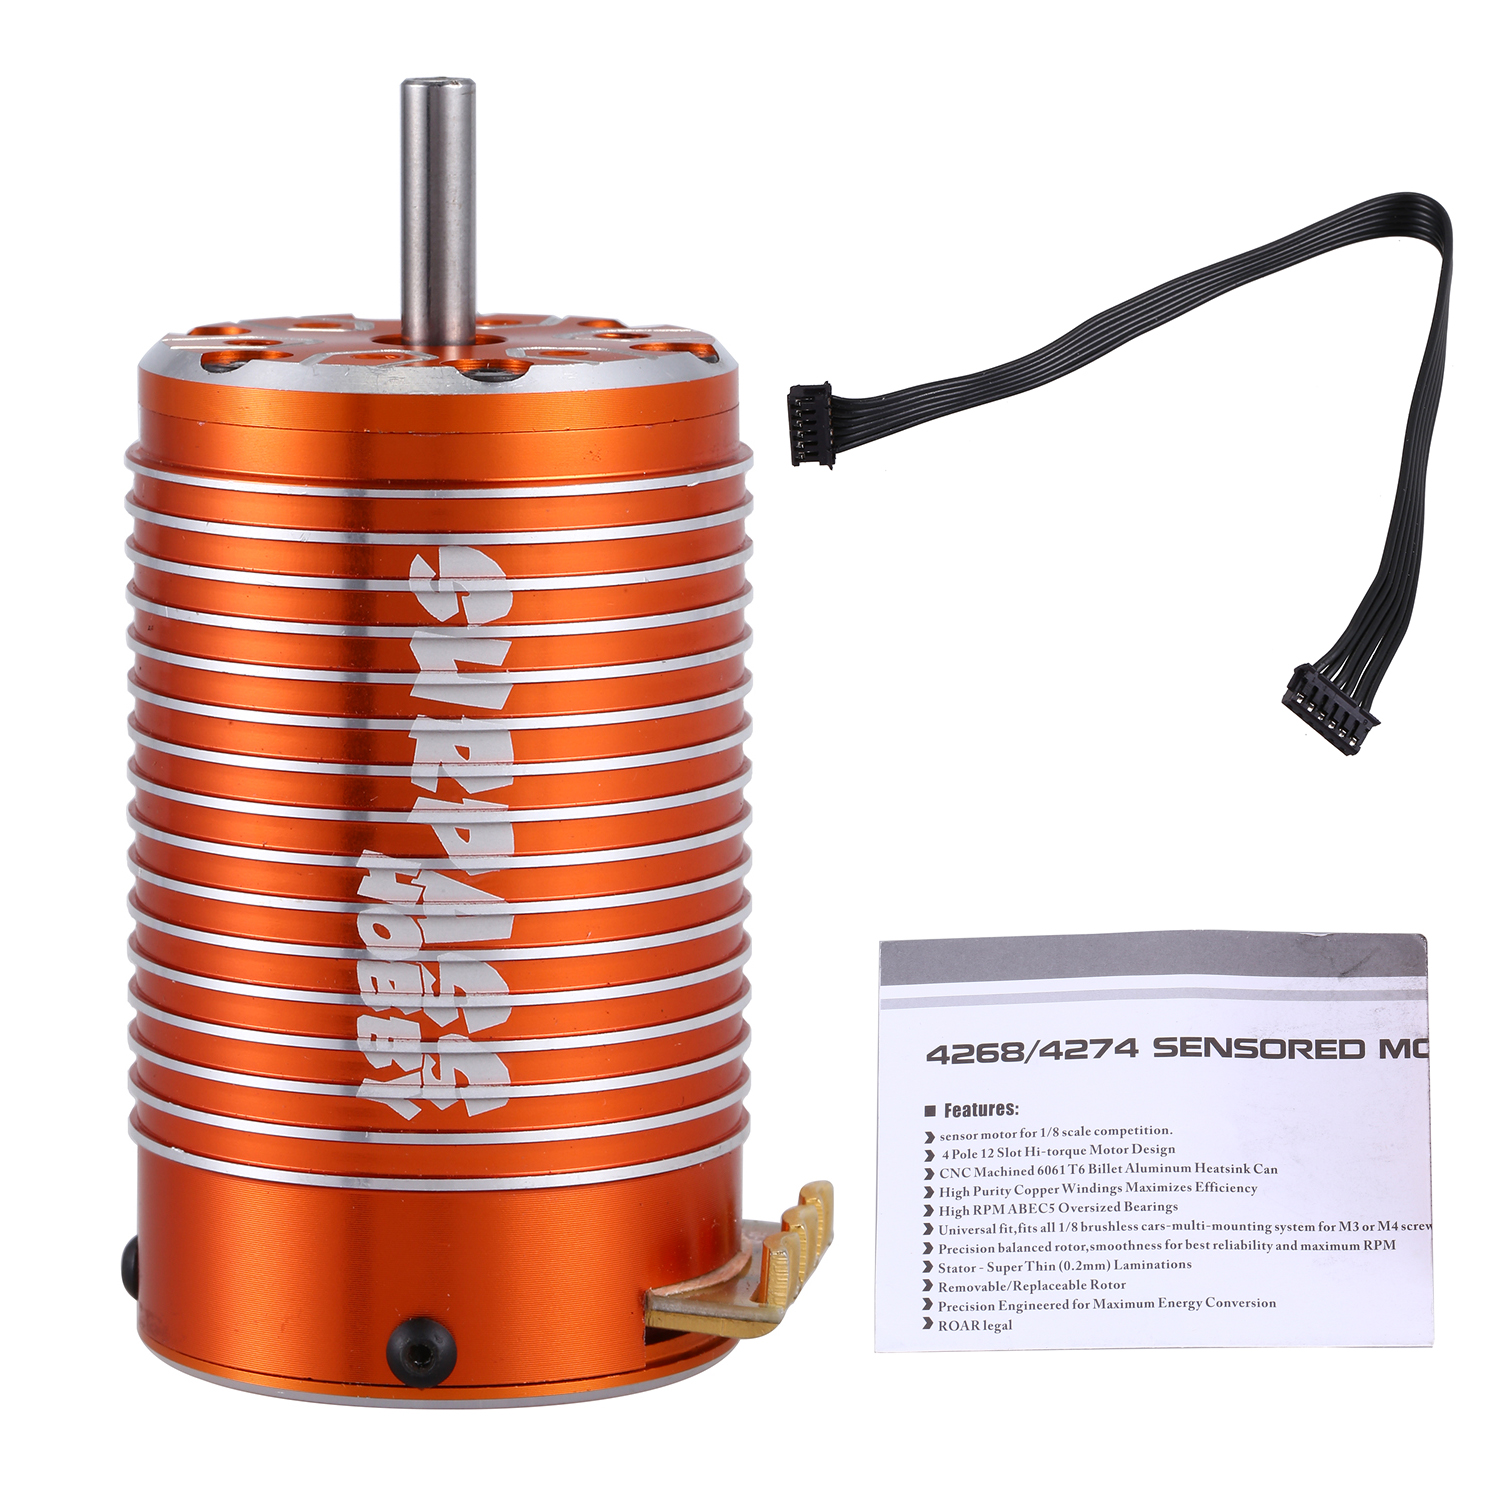 SURPASS HOBBY 4274 2000KV 4 Poles Sensored Brushless Motor for RC 1/8 Truck Bigfoot Car-in Parts & Accessories from Toys & Hobbies    1